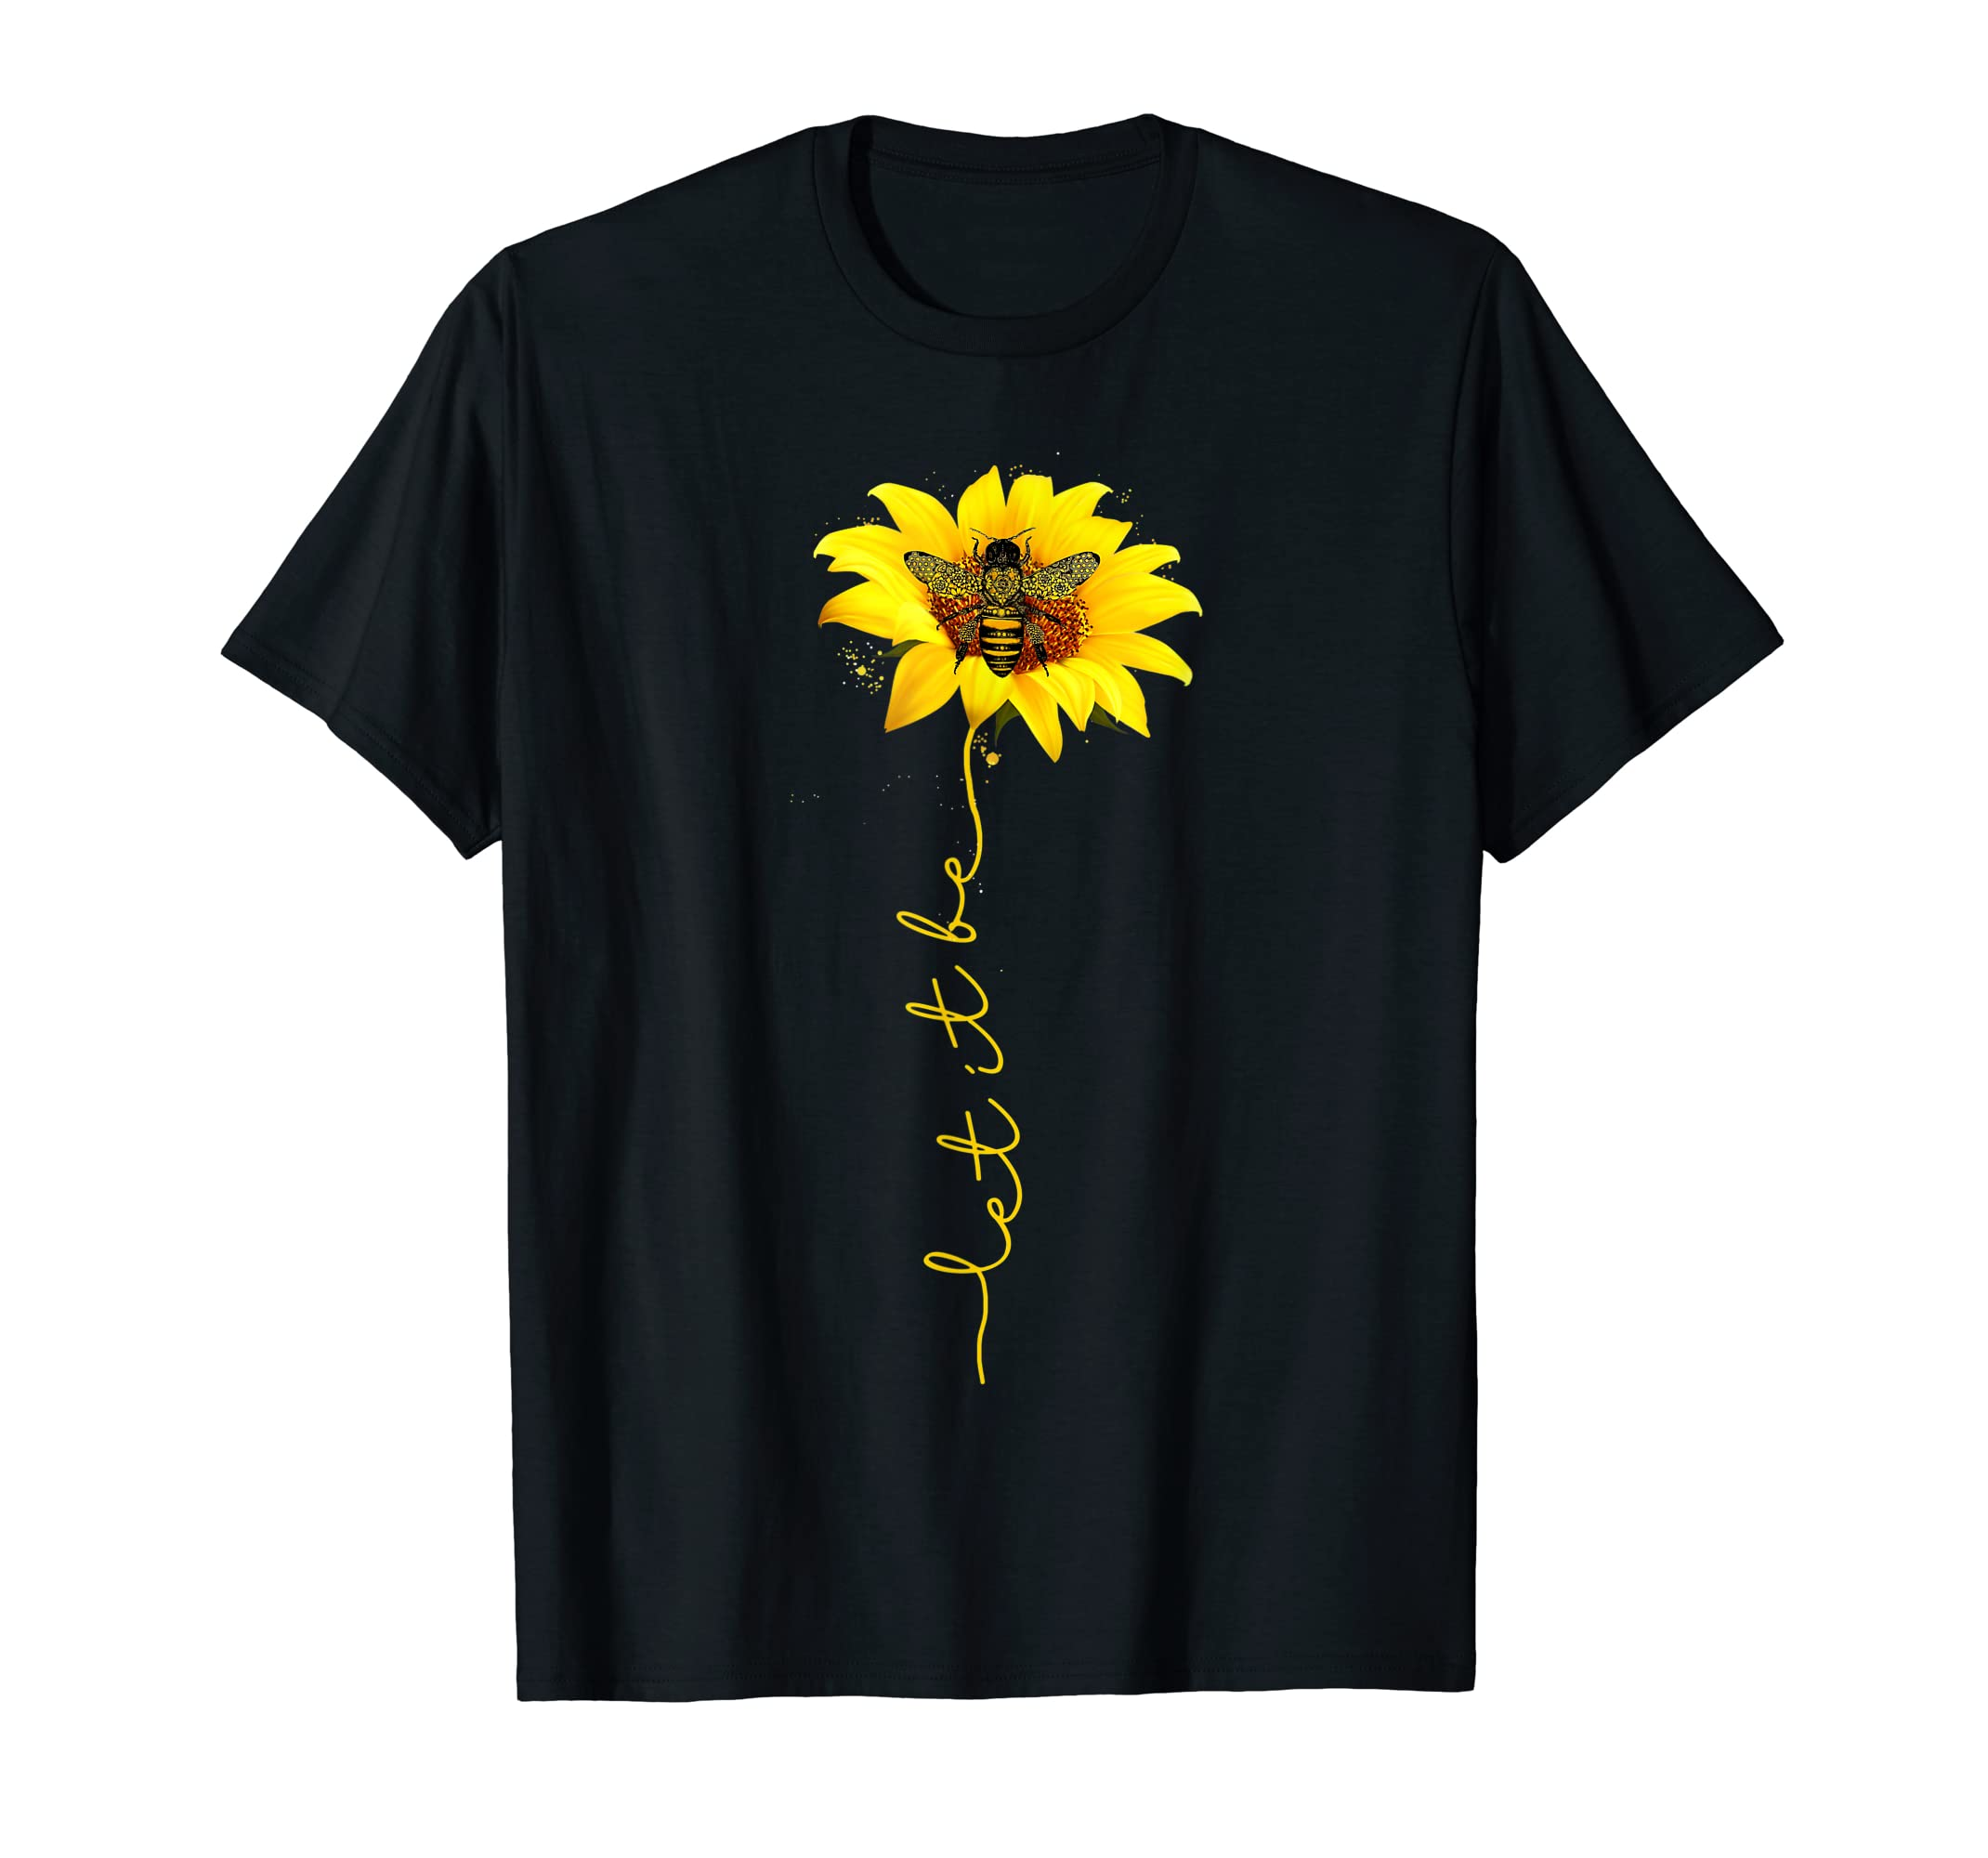 Tee Let It Bee Sunflower Graphic T-Shirt-Men's T-Shirt-Black